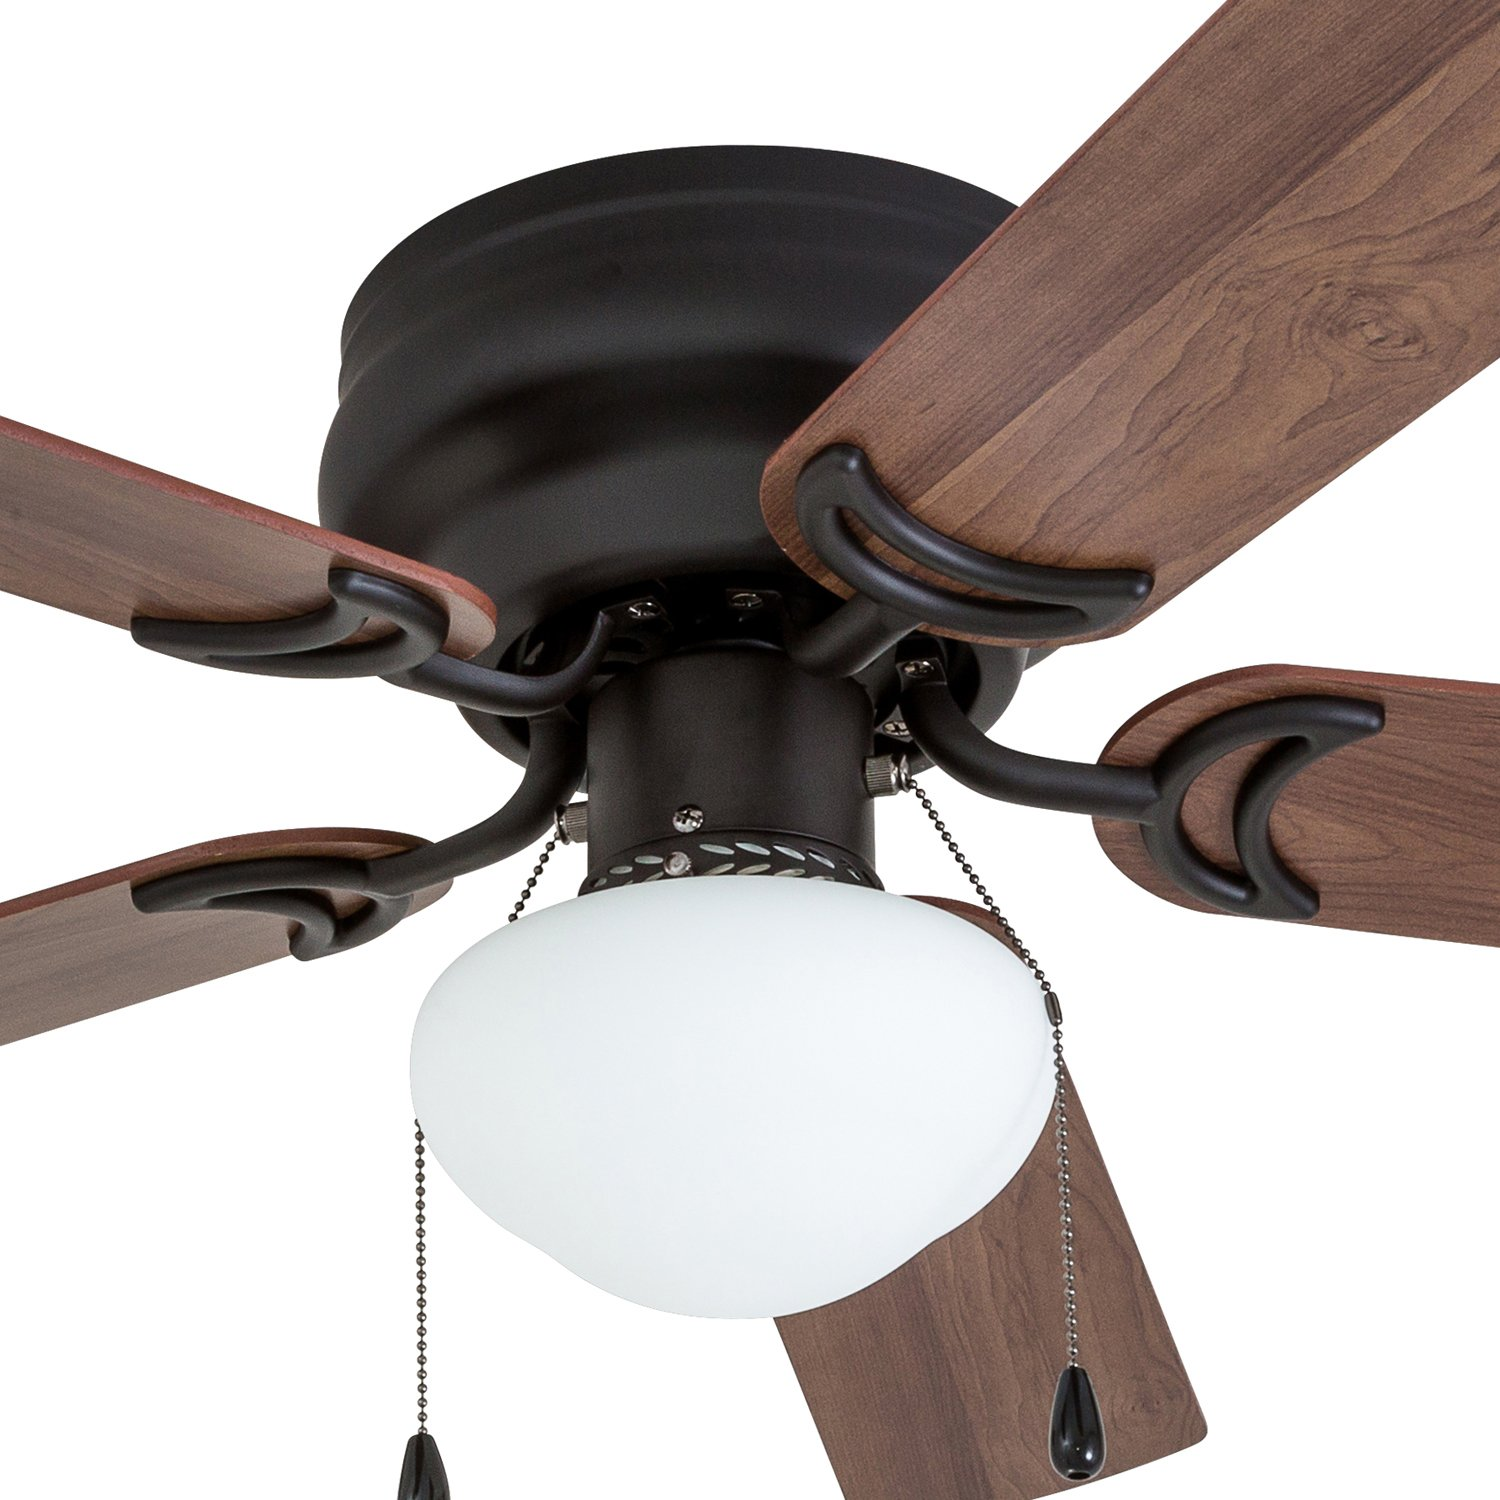 Prominence Home 50860 Alvina LED Globe Light Hugger/Low Profile Ceiling Fan, 42 inches, Bronze by Prominence Home (Image #2)